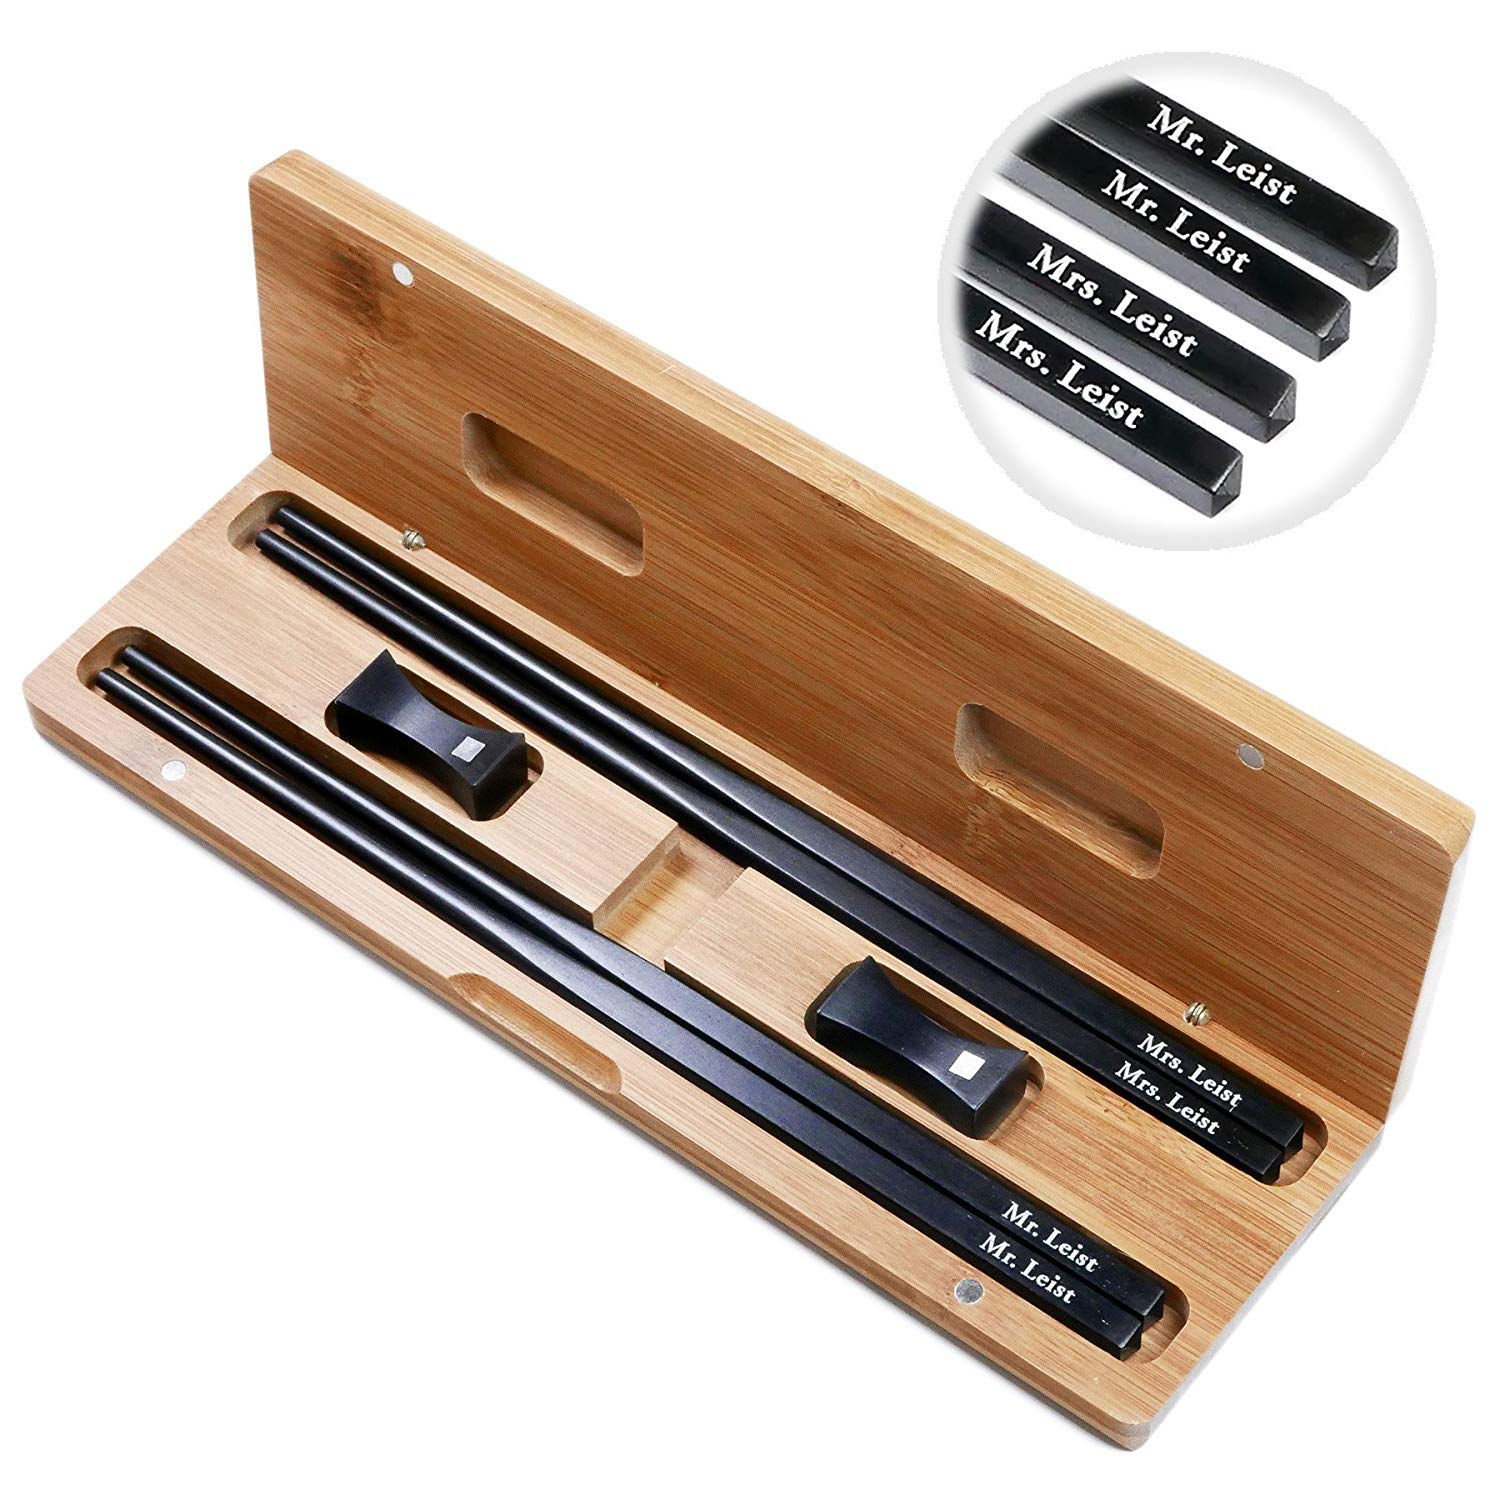 2 Pairs 10 Inch Natural Ebony Wood Chinese Chopsticks Custom Engraved With Personalized Names in Silver Color - In Classic Square handle Chinese or Japanese Style - Gift Set With Rests and Bamboo Case